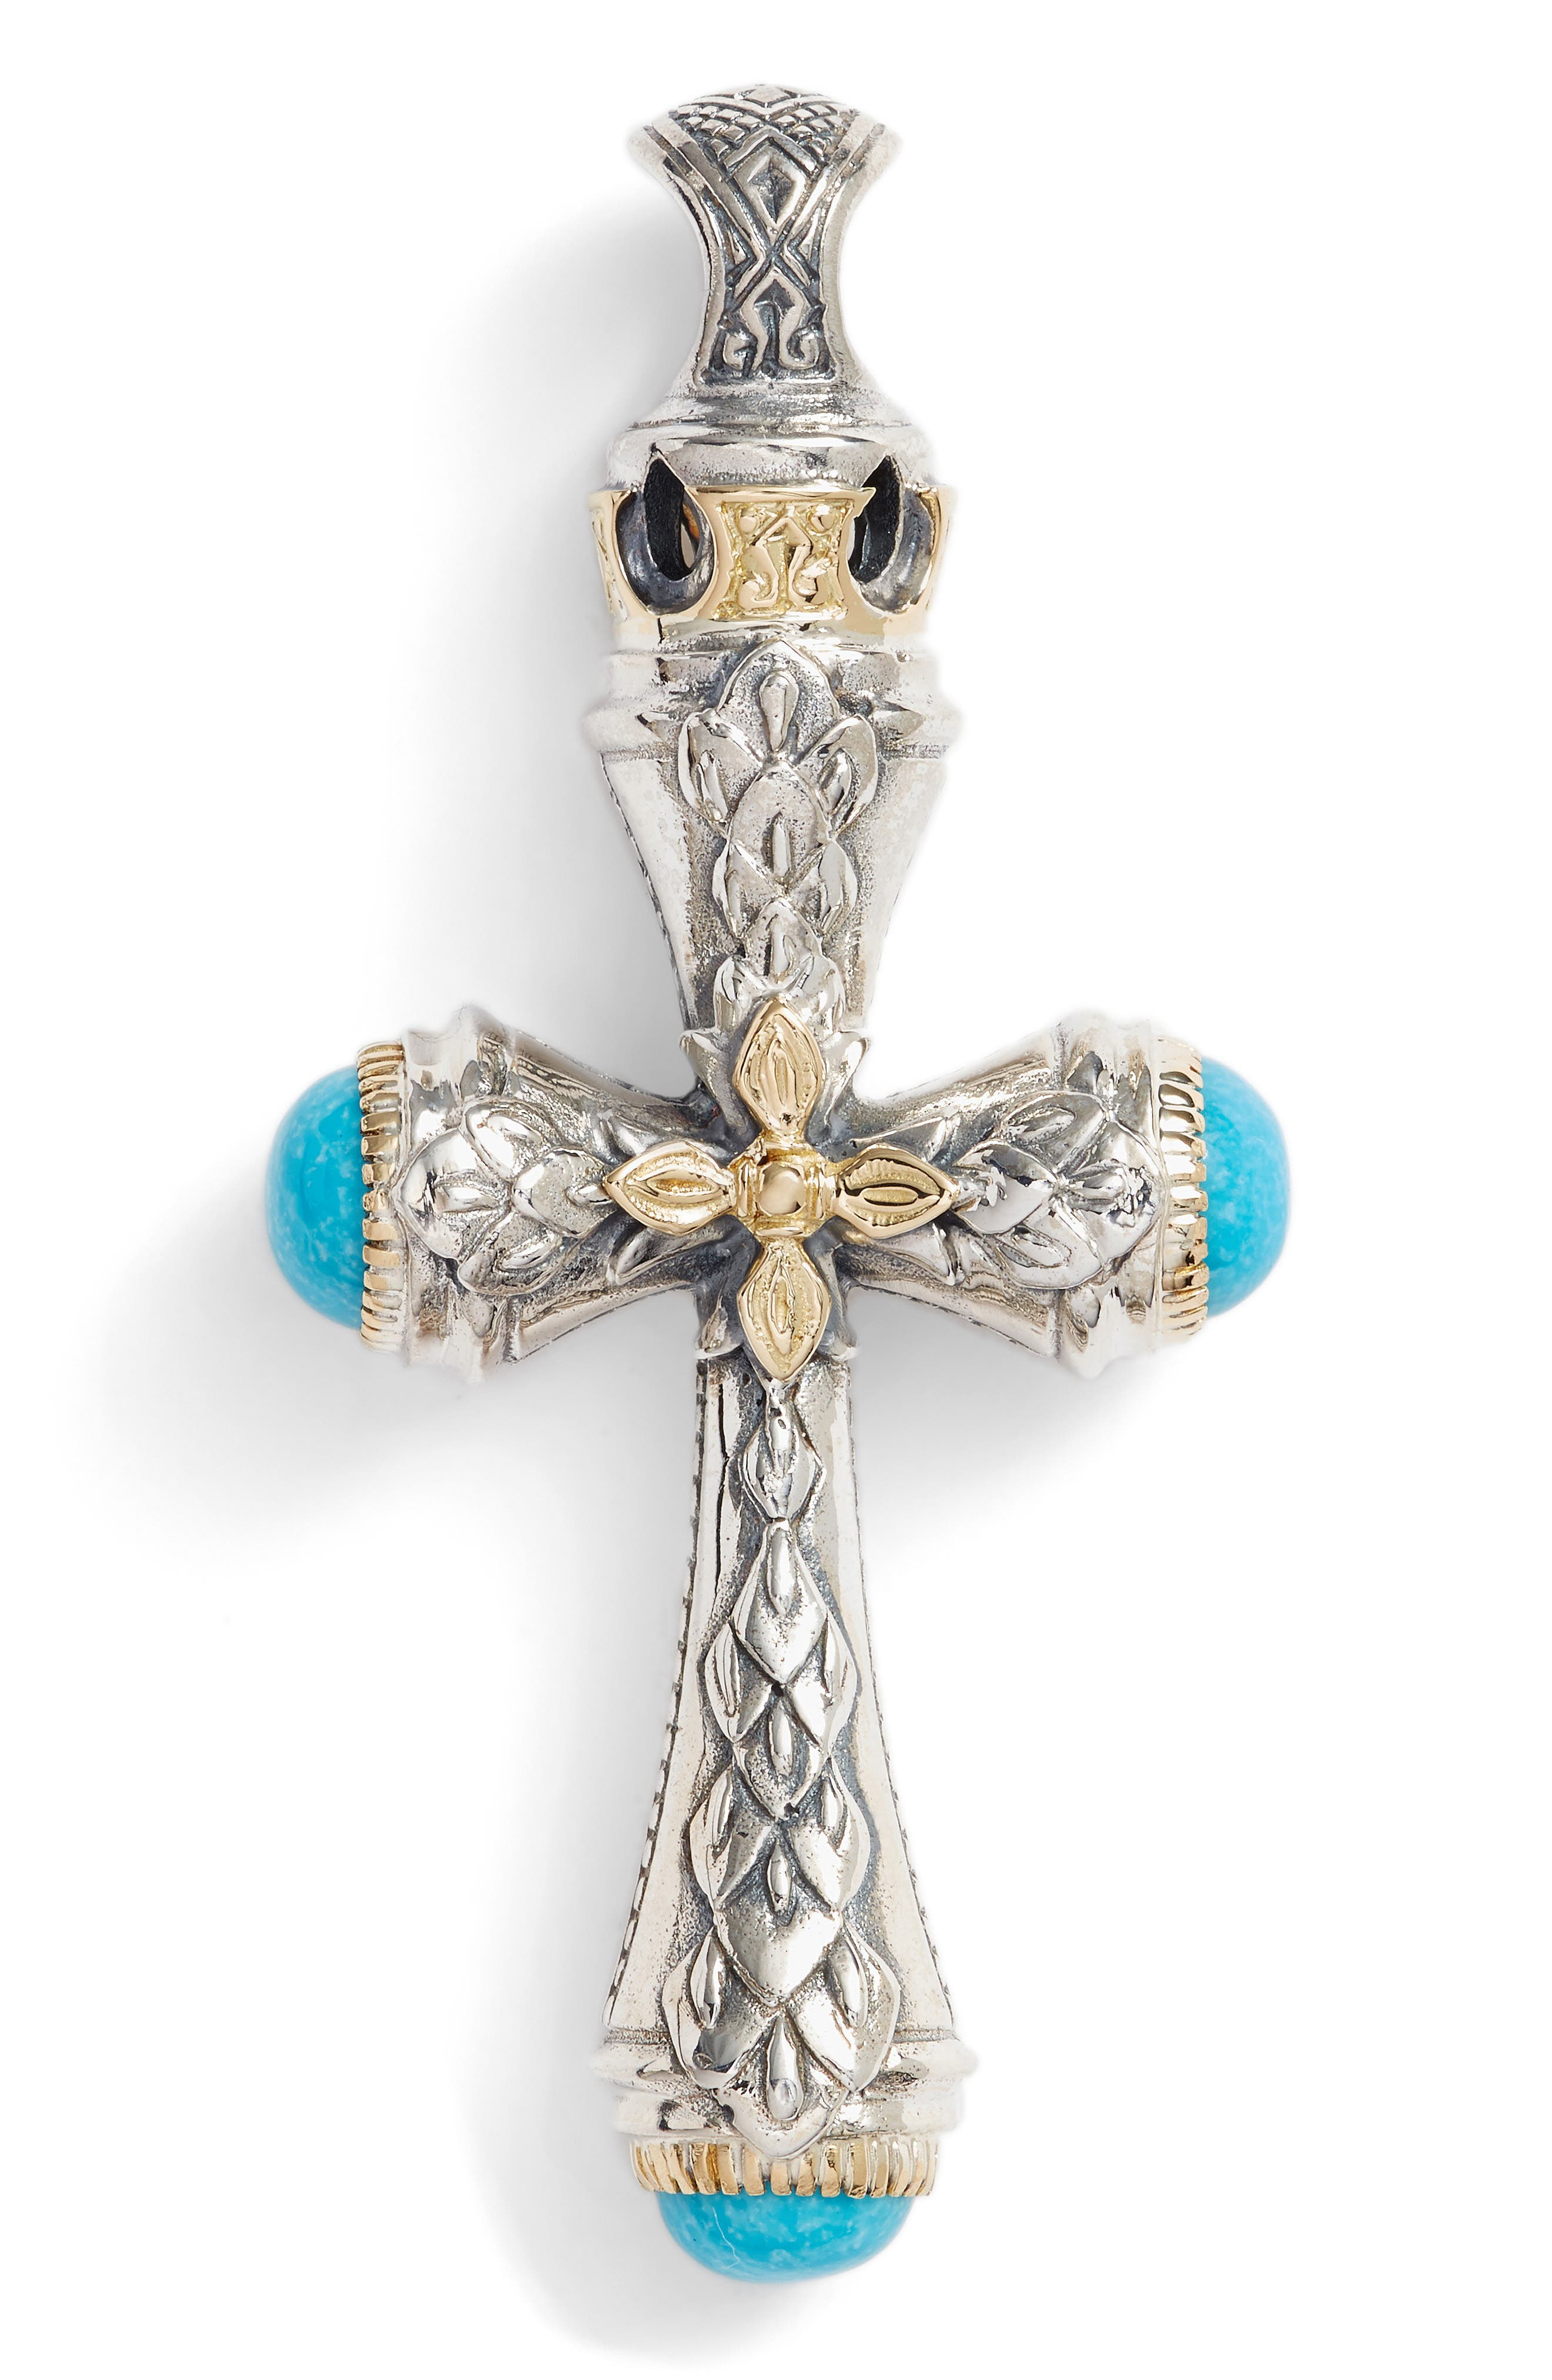 Heonos Turquoise Cross,                         Main,                         color, SILVER/ GOLD/ TURQUOISE